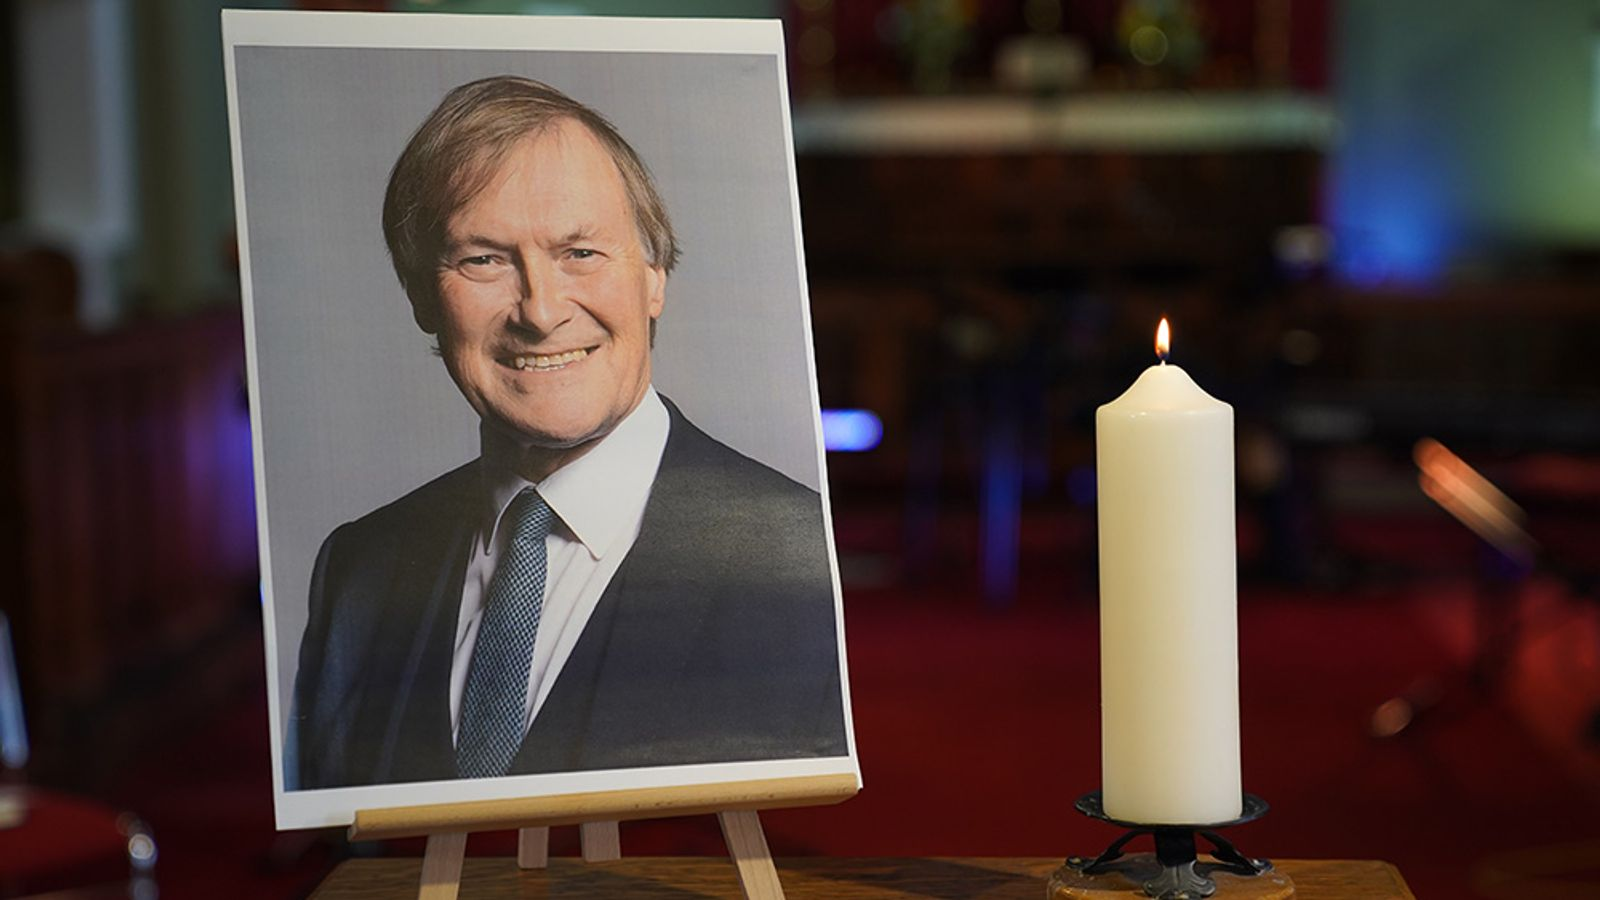 Sir David Amess murder: MP's family says they are 'absolutely broken, but we will survive'